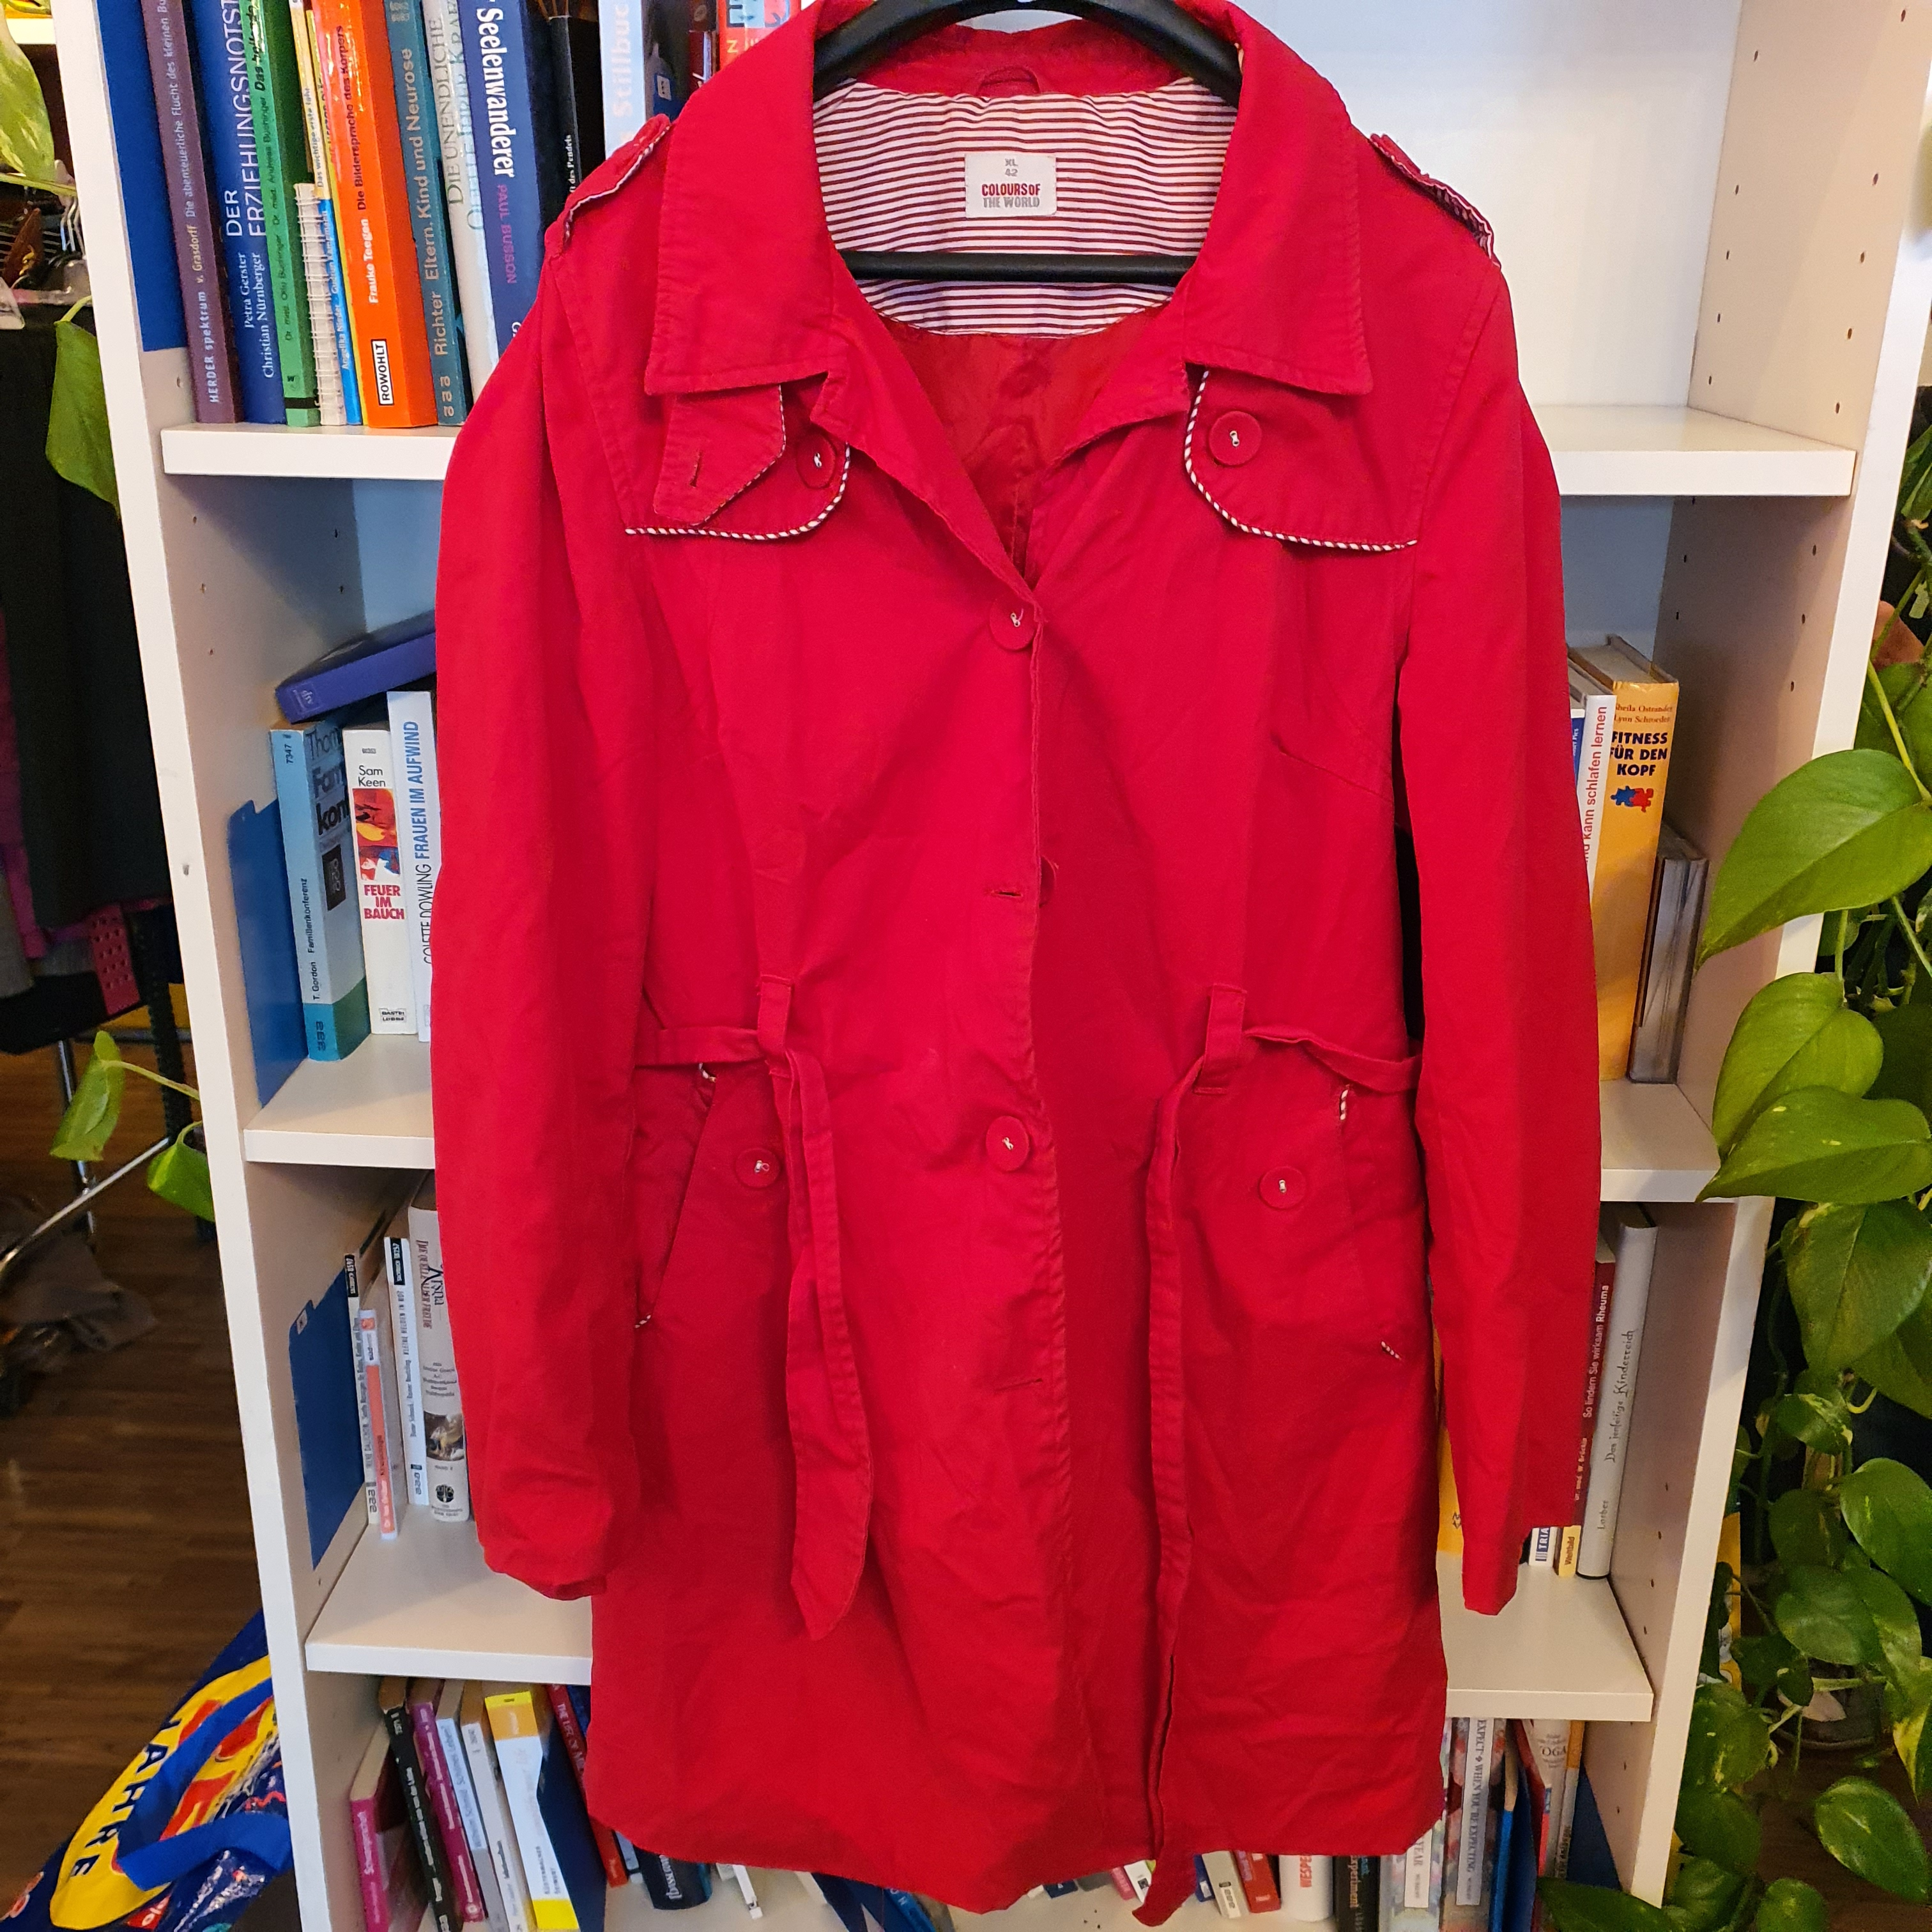 Jacke rot COLOURS OF THE WORLD Gr. XL/42 kostenlos